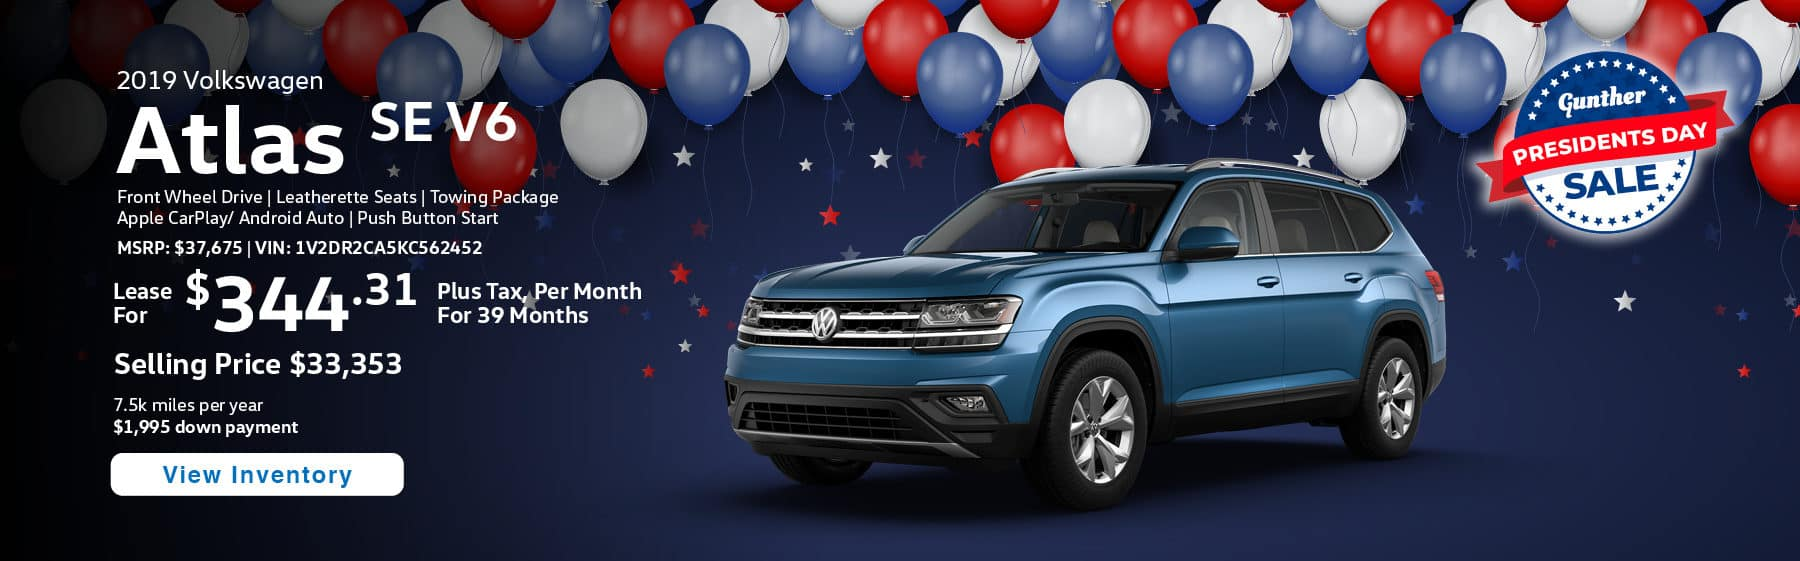 Lease the 2019 Atlas SE V6 for $344.31 per month, plus tax for 39 months.